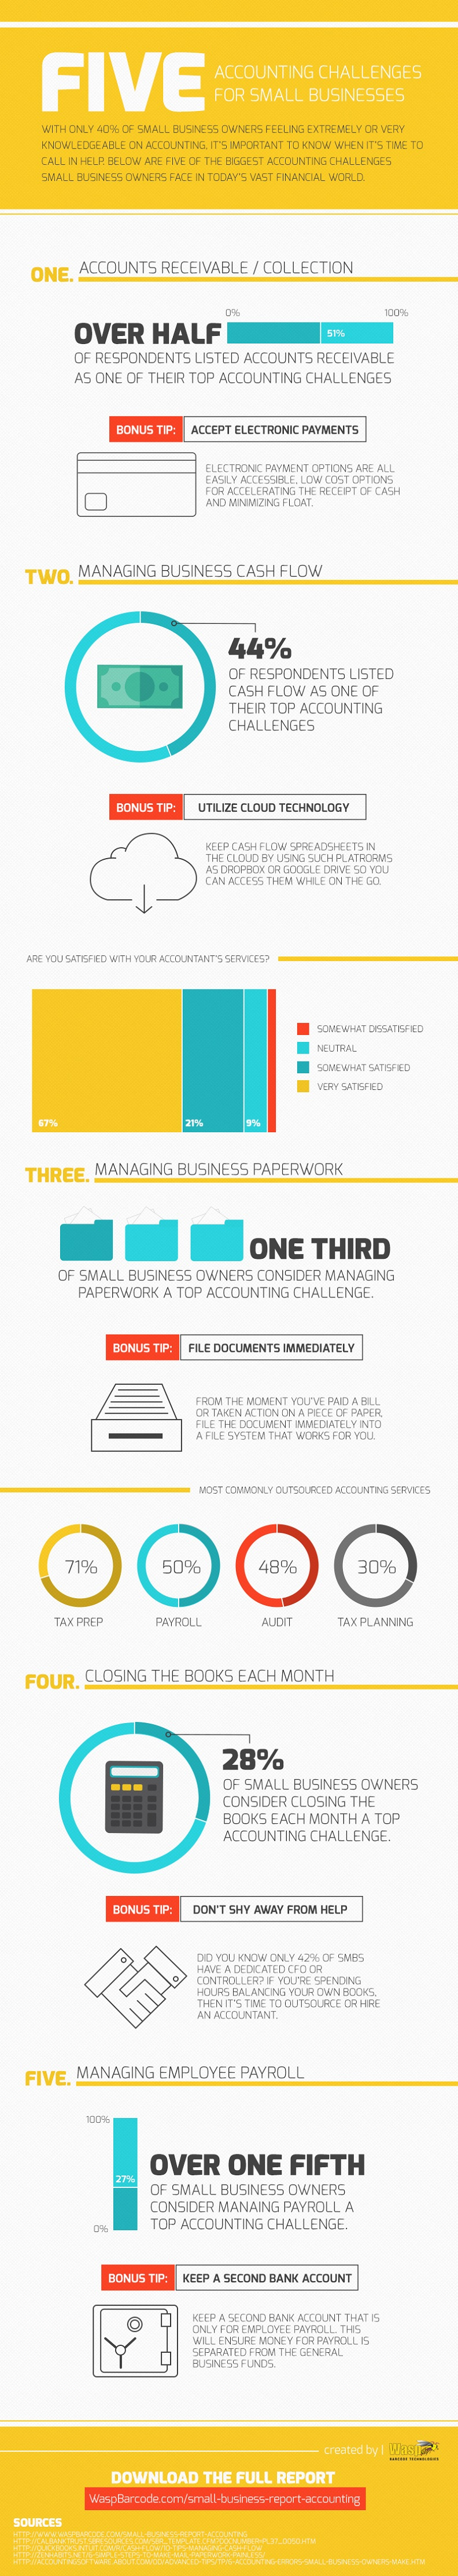 5-accounting-challenges-small-business-moneris